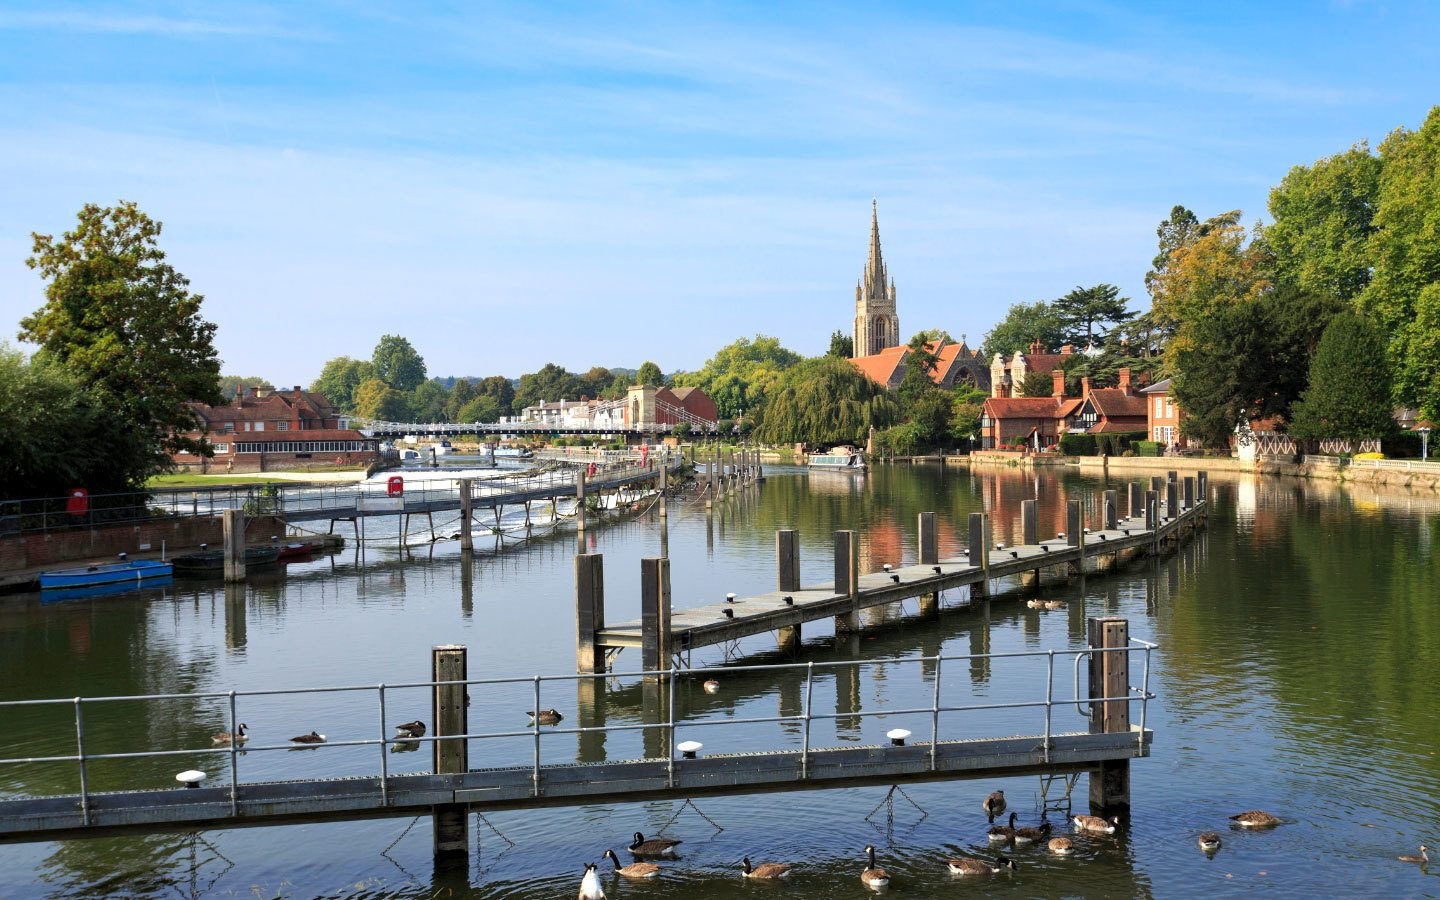 A walking holiday to Marlow along the River Thames [photo credit Canva]